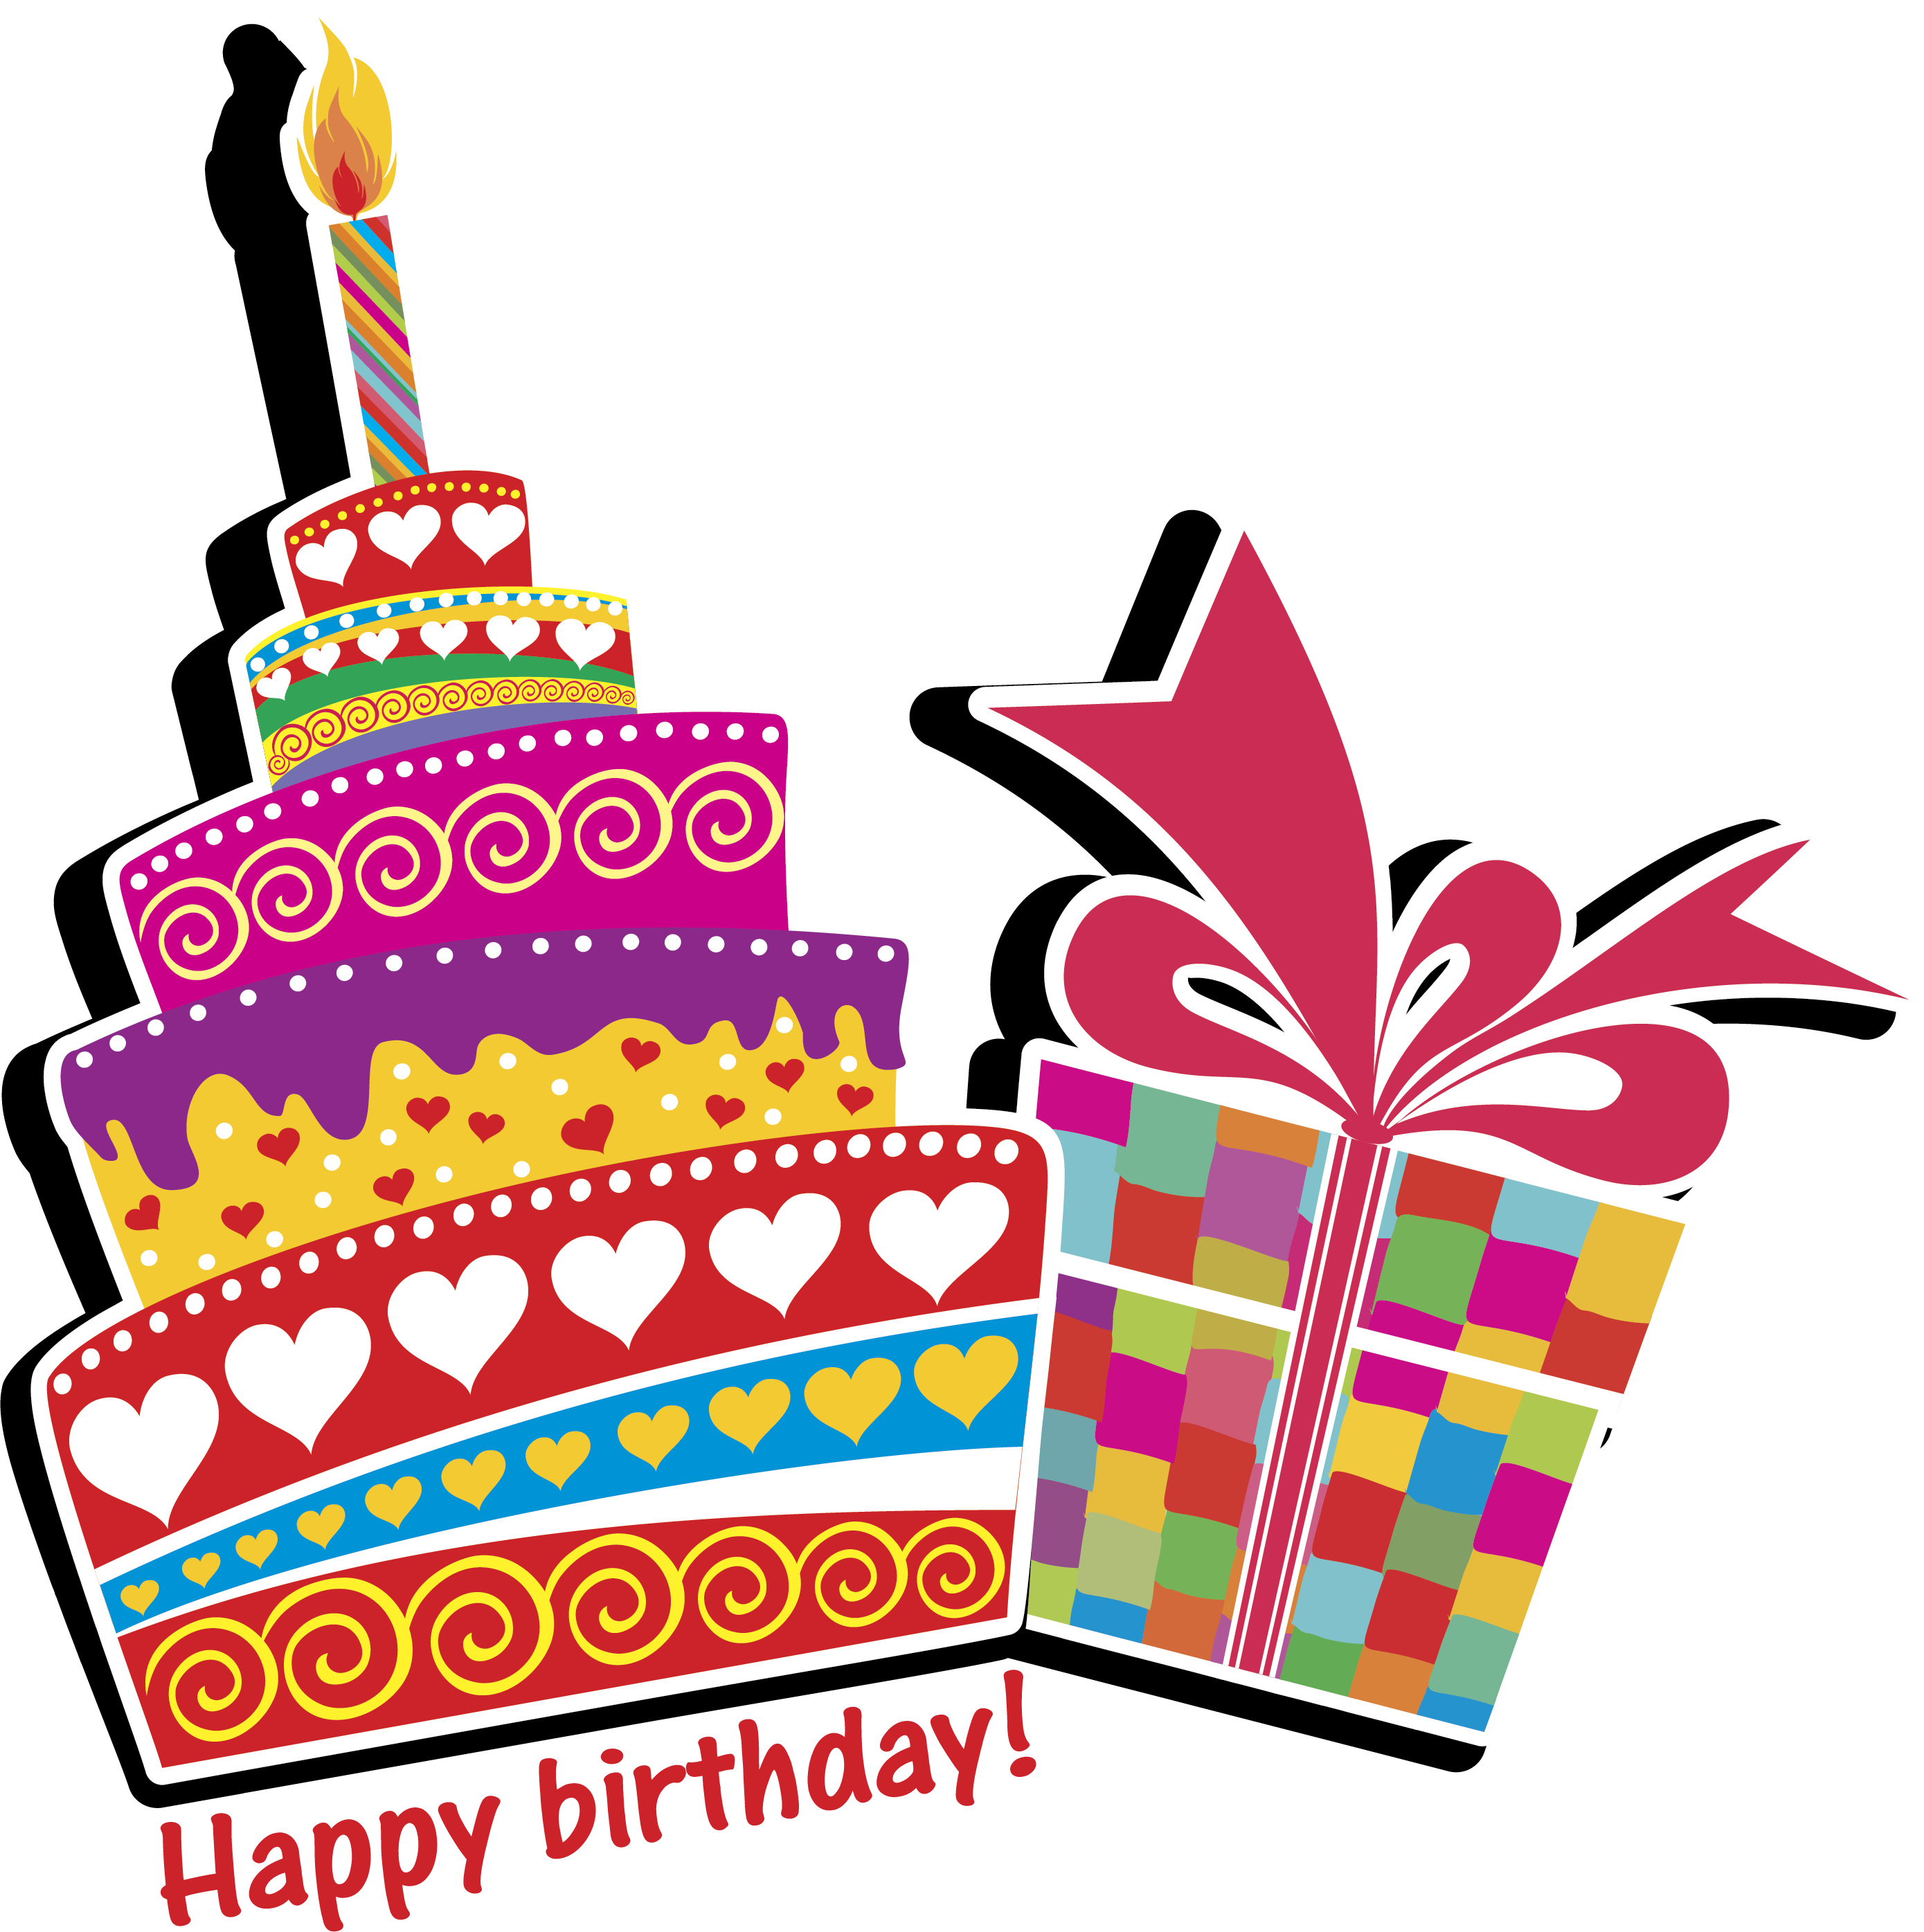 Birthday Vector Free